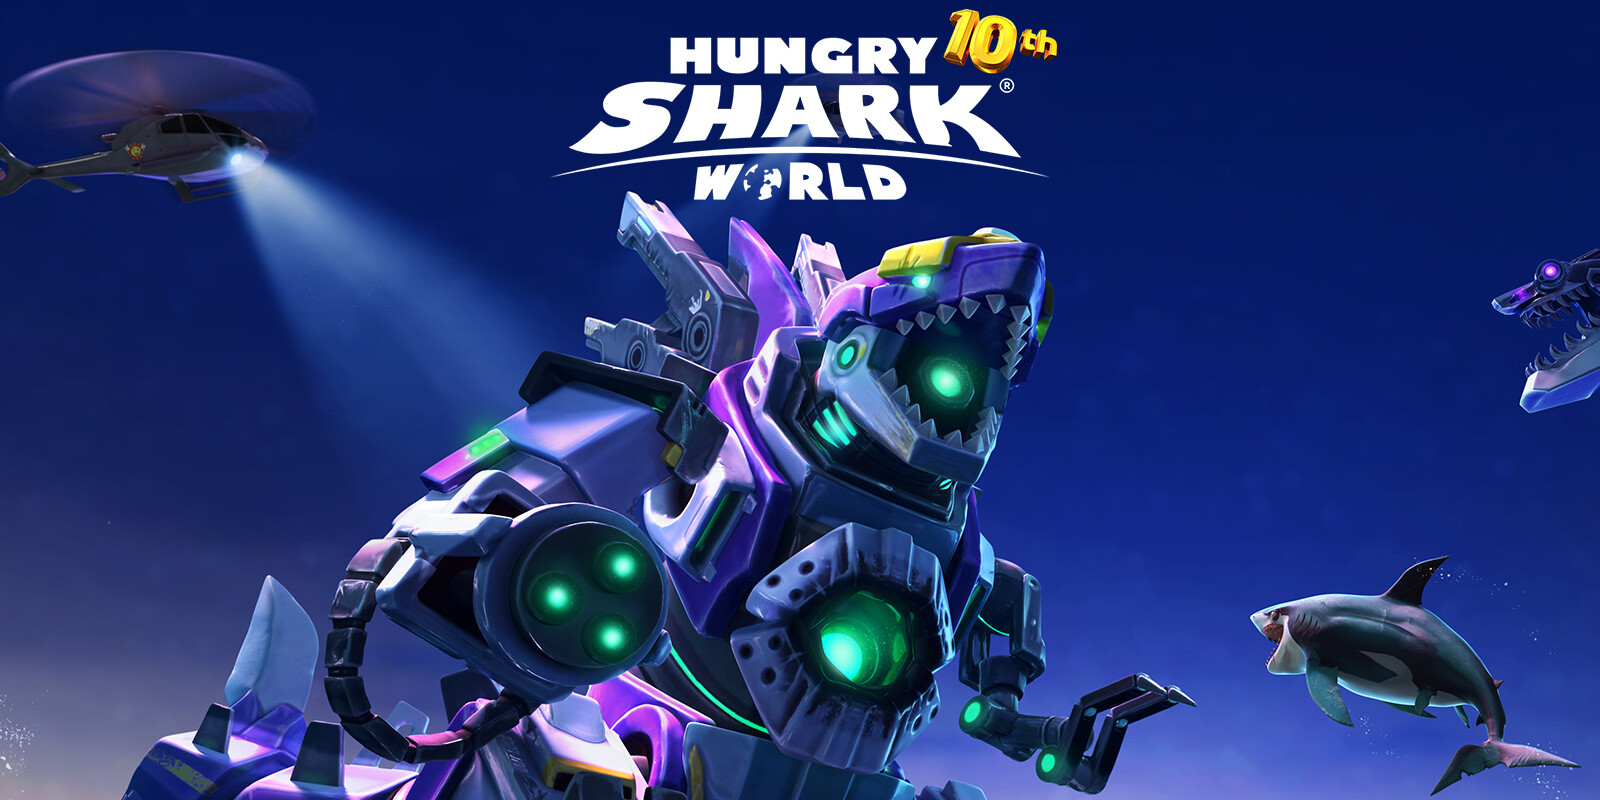 Hungry Shark World 10th Anniversary Update